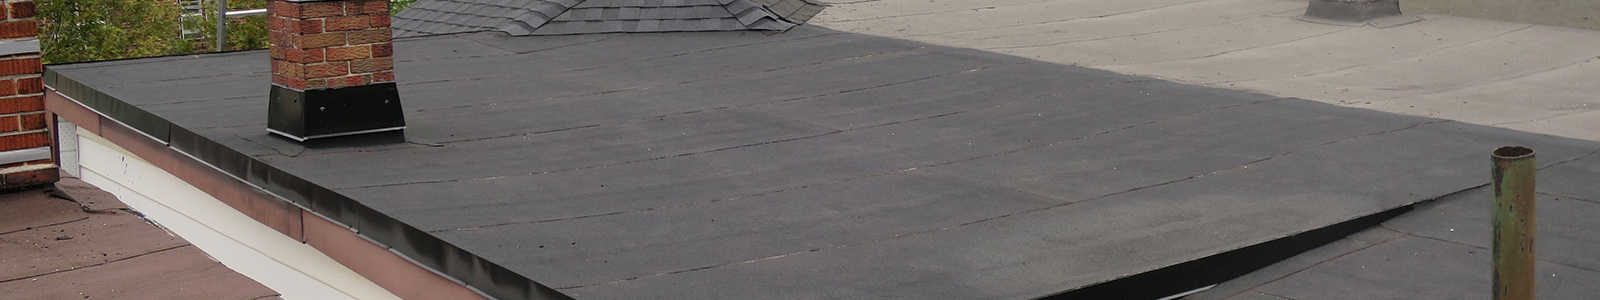 Flat Roof Repair Services in Toronto & the GTA | Quality